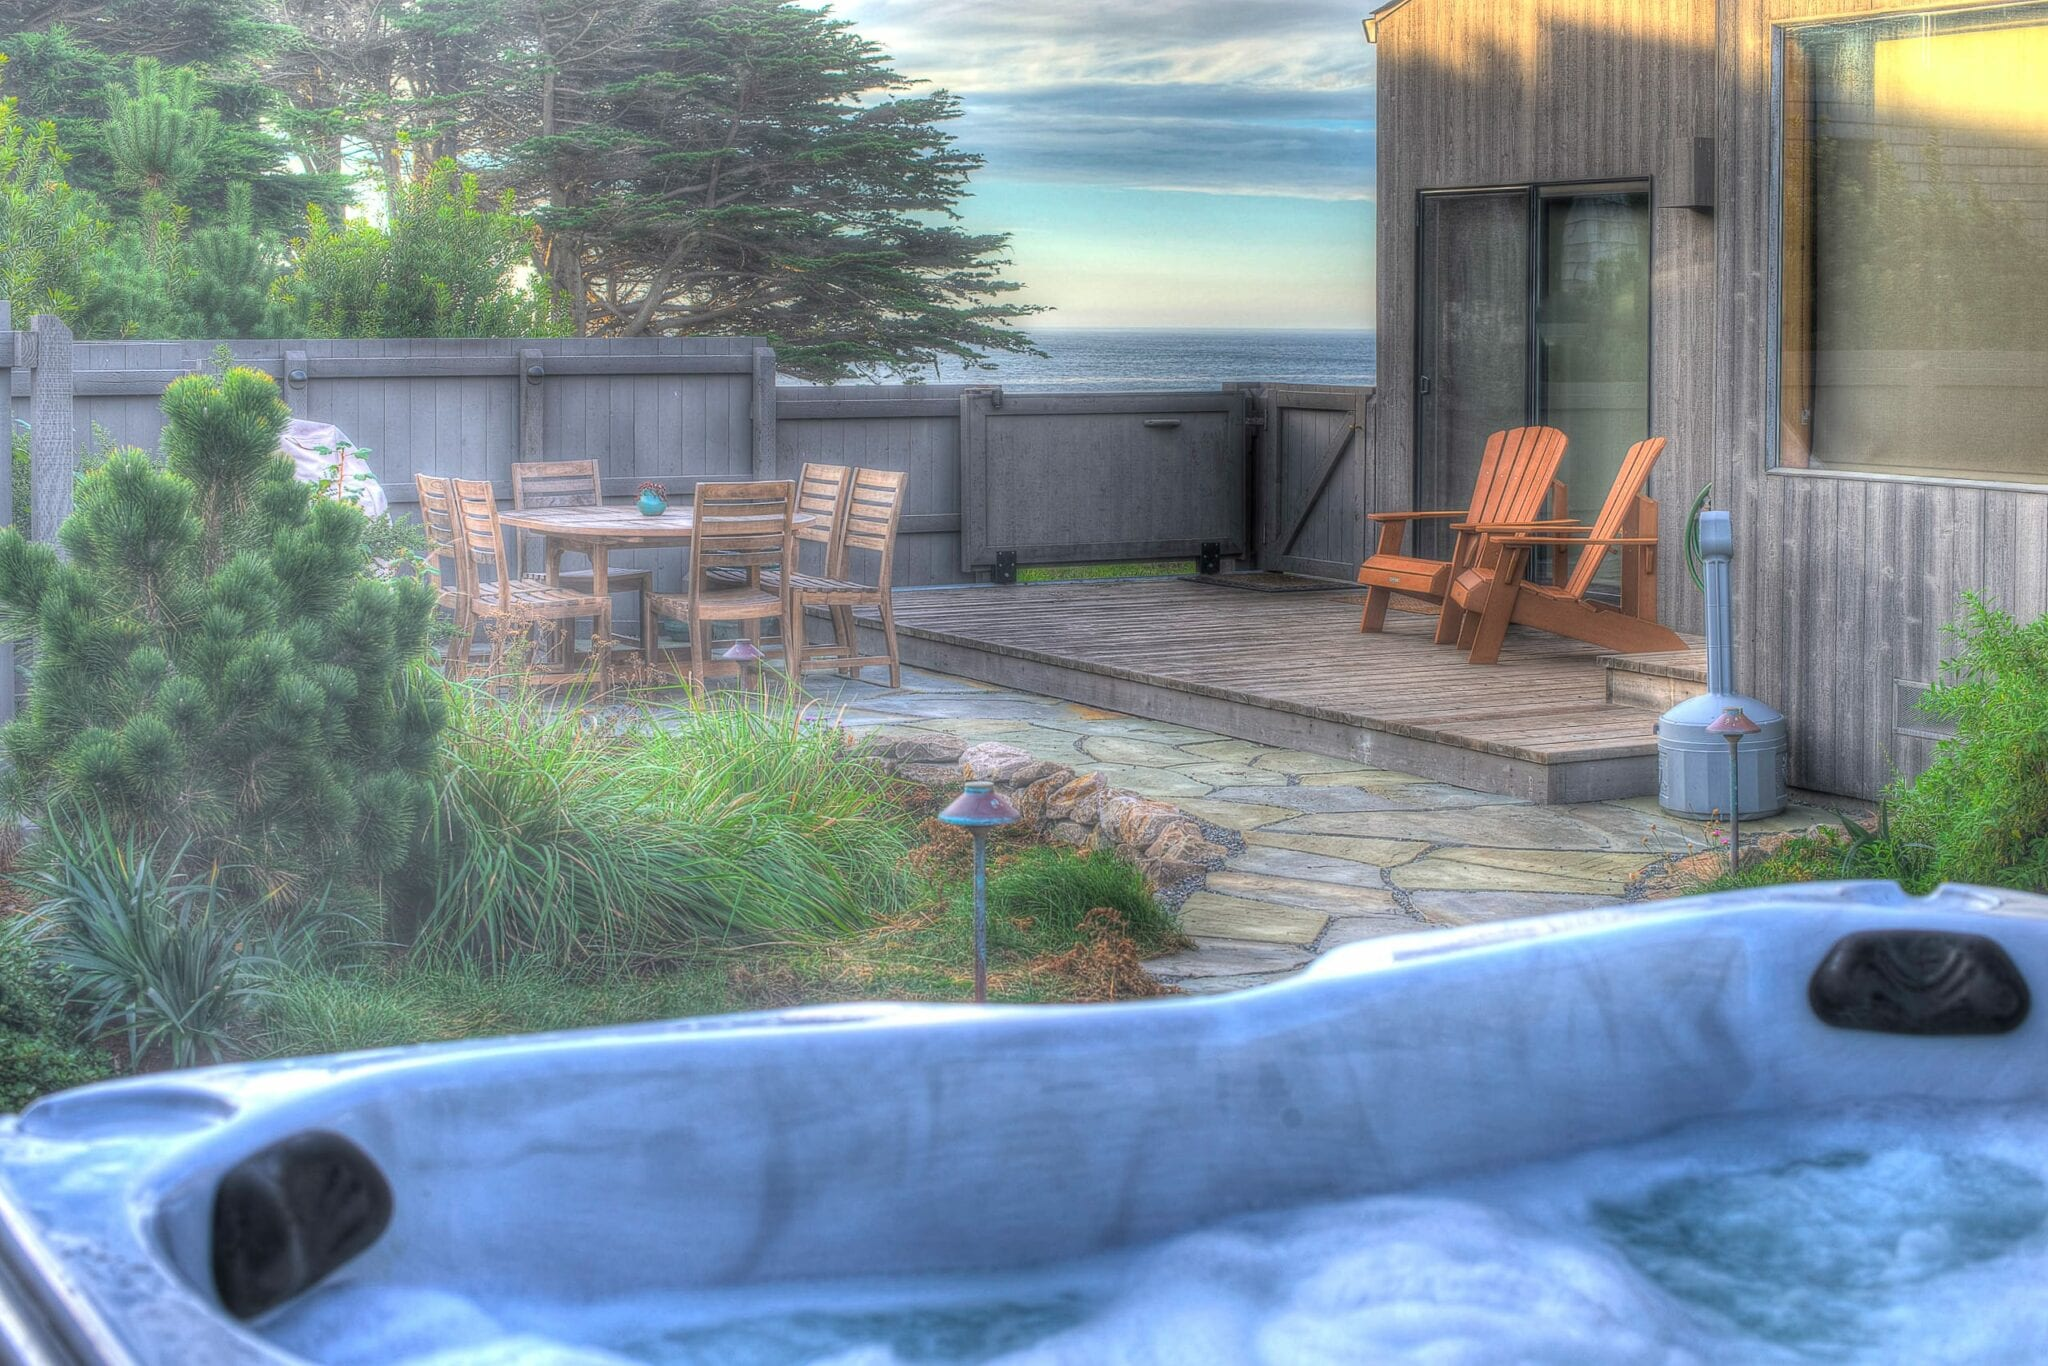 Ocean viewsprivate courtyard, Dog friendly,Kid friendly, Sea Ranch, Abalone Bay, Vacation Rental, oceanfront